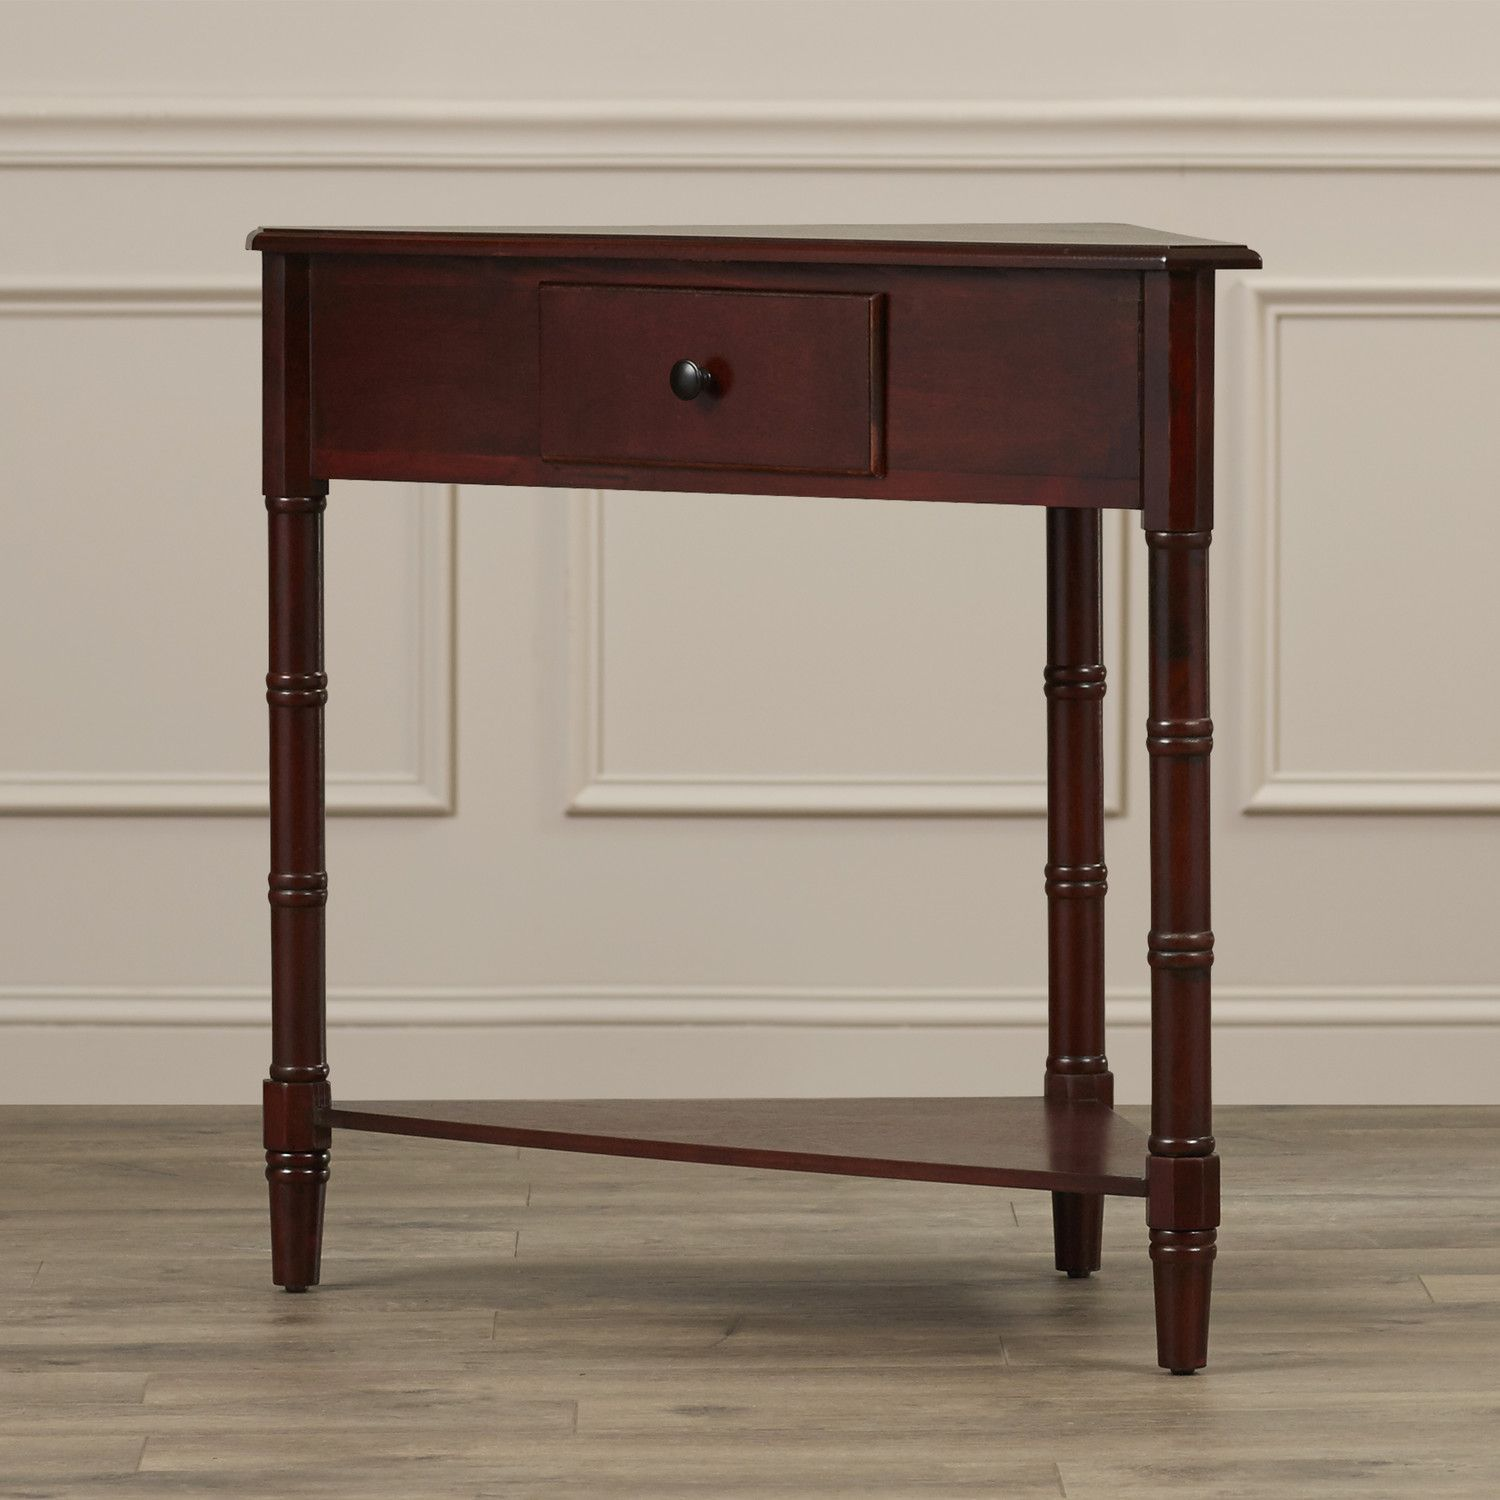 Wayfair For Corner End Tables To Match Every Style And Budget Enjoy Free Shipping On Most Stuff Even